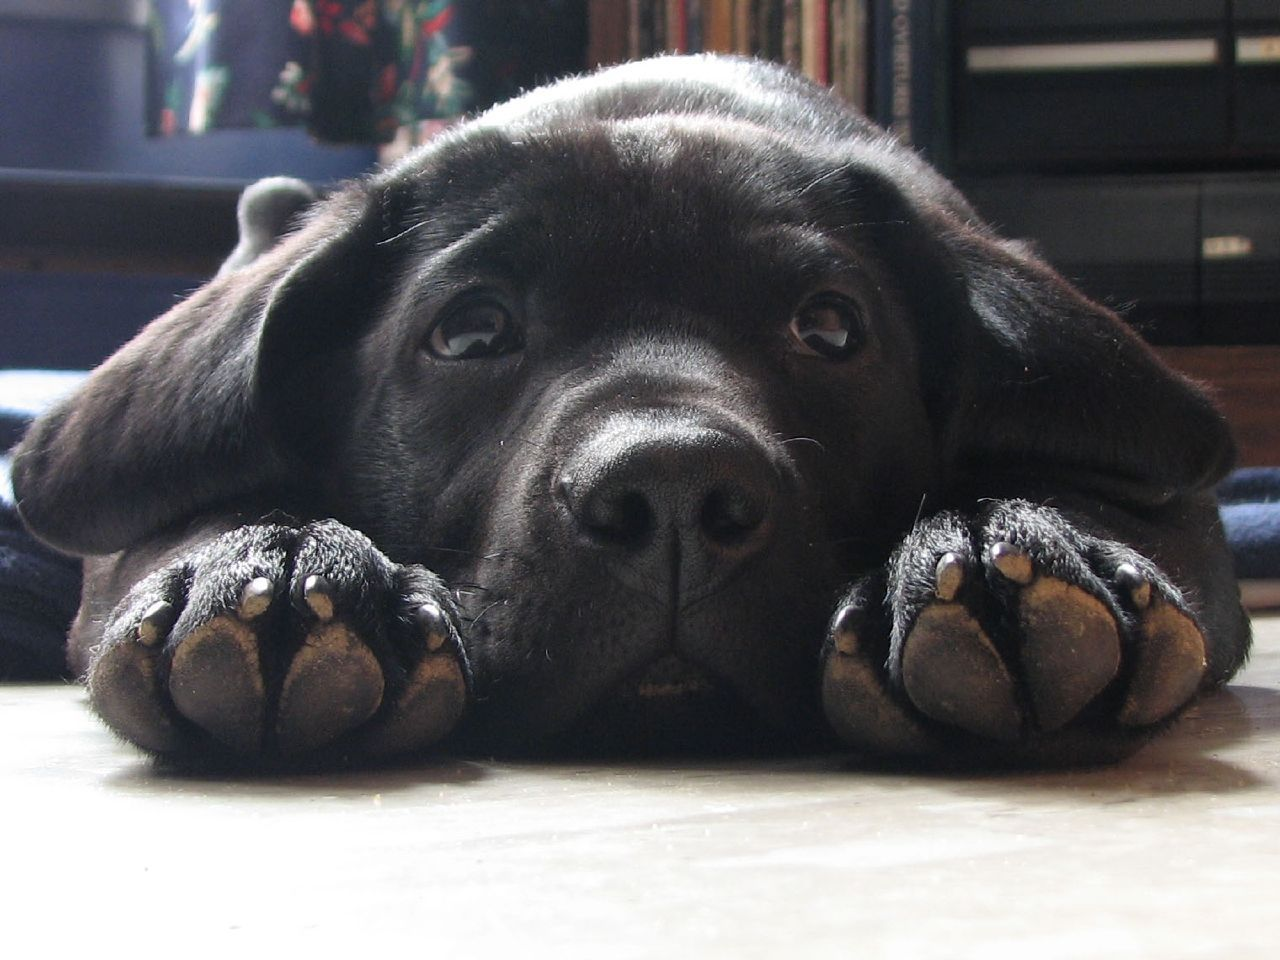 Lab Puppies Are The Sweetest And Cuddle Time With Them Brightens Any Day I Still Love Black Labrador Puppy Black Labrador Retriever Labrador Retriever Puppies